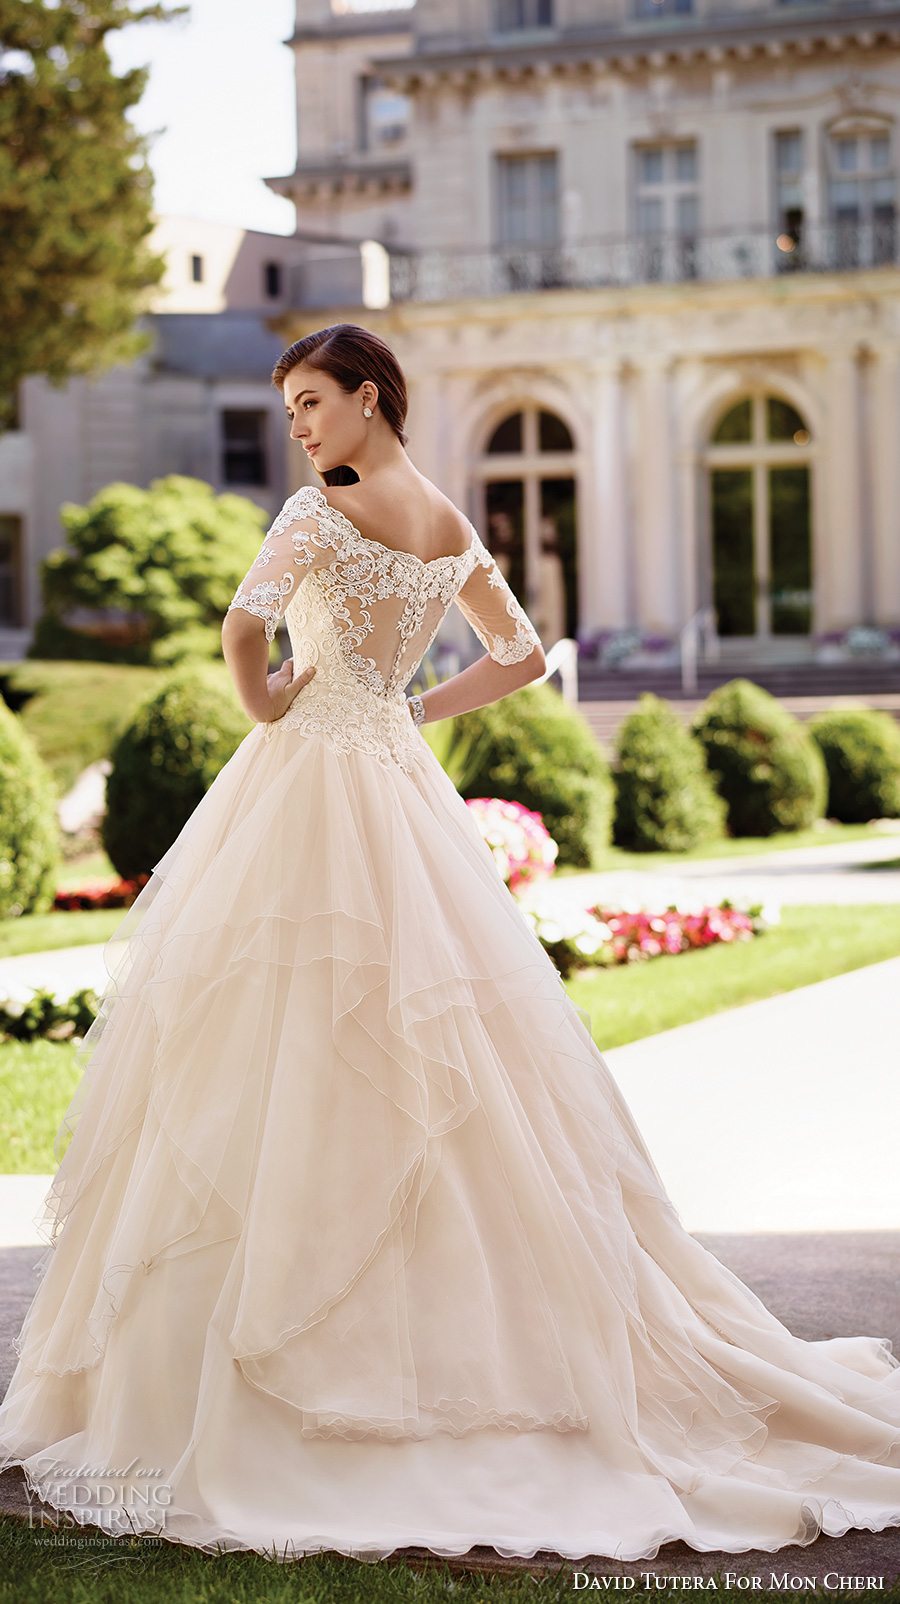 david tutera mc spring 2017 bridal half sleeves illusion off the shoulder sweetheart neckline heavily embellished bodice princess ball gown wedding dress lace back chapel train (117292) bv